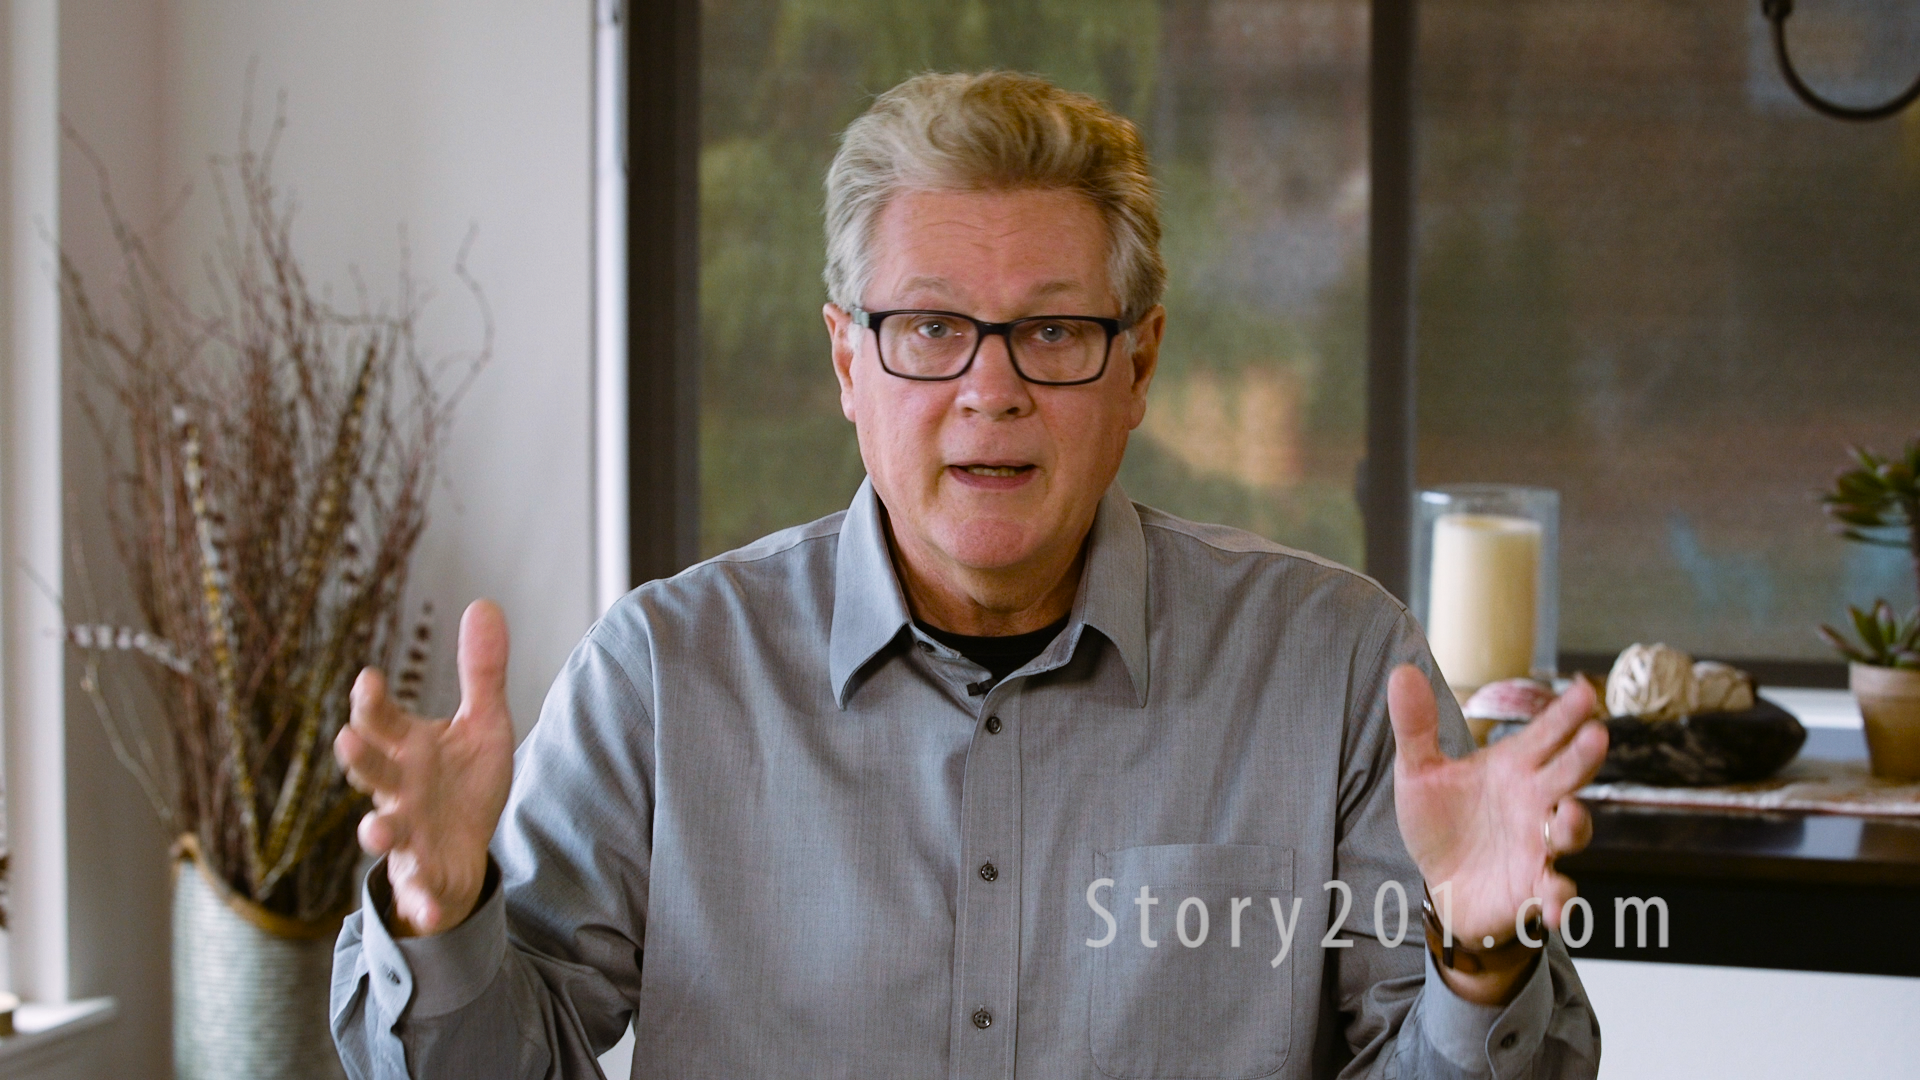 - insert short Introduction to Storytelling video